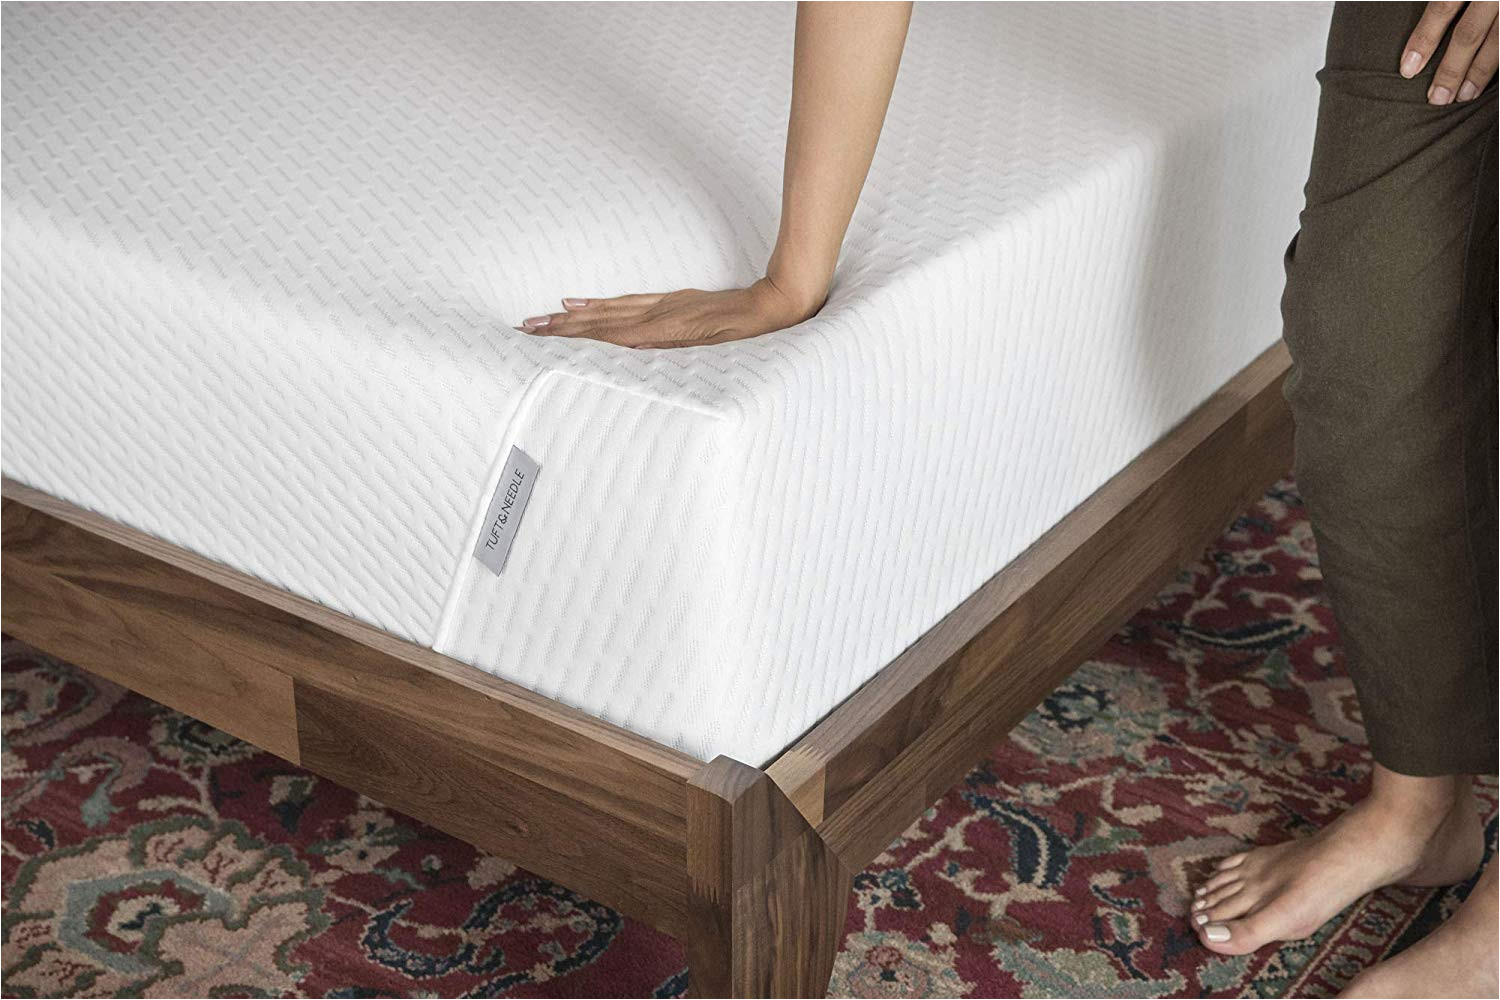 Big Fig Mattress Real Reviews Amazon Com Tuft Needle Queen Mattress Bed In A Box T N Adaptive